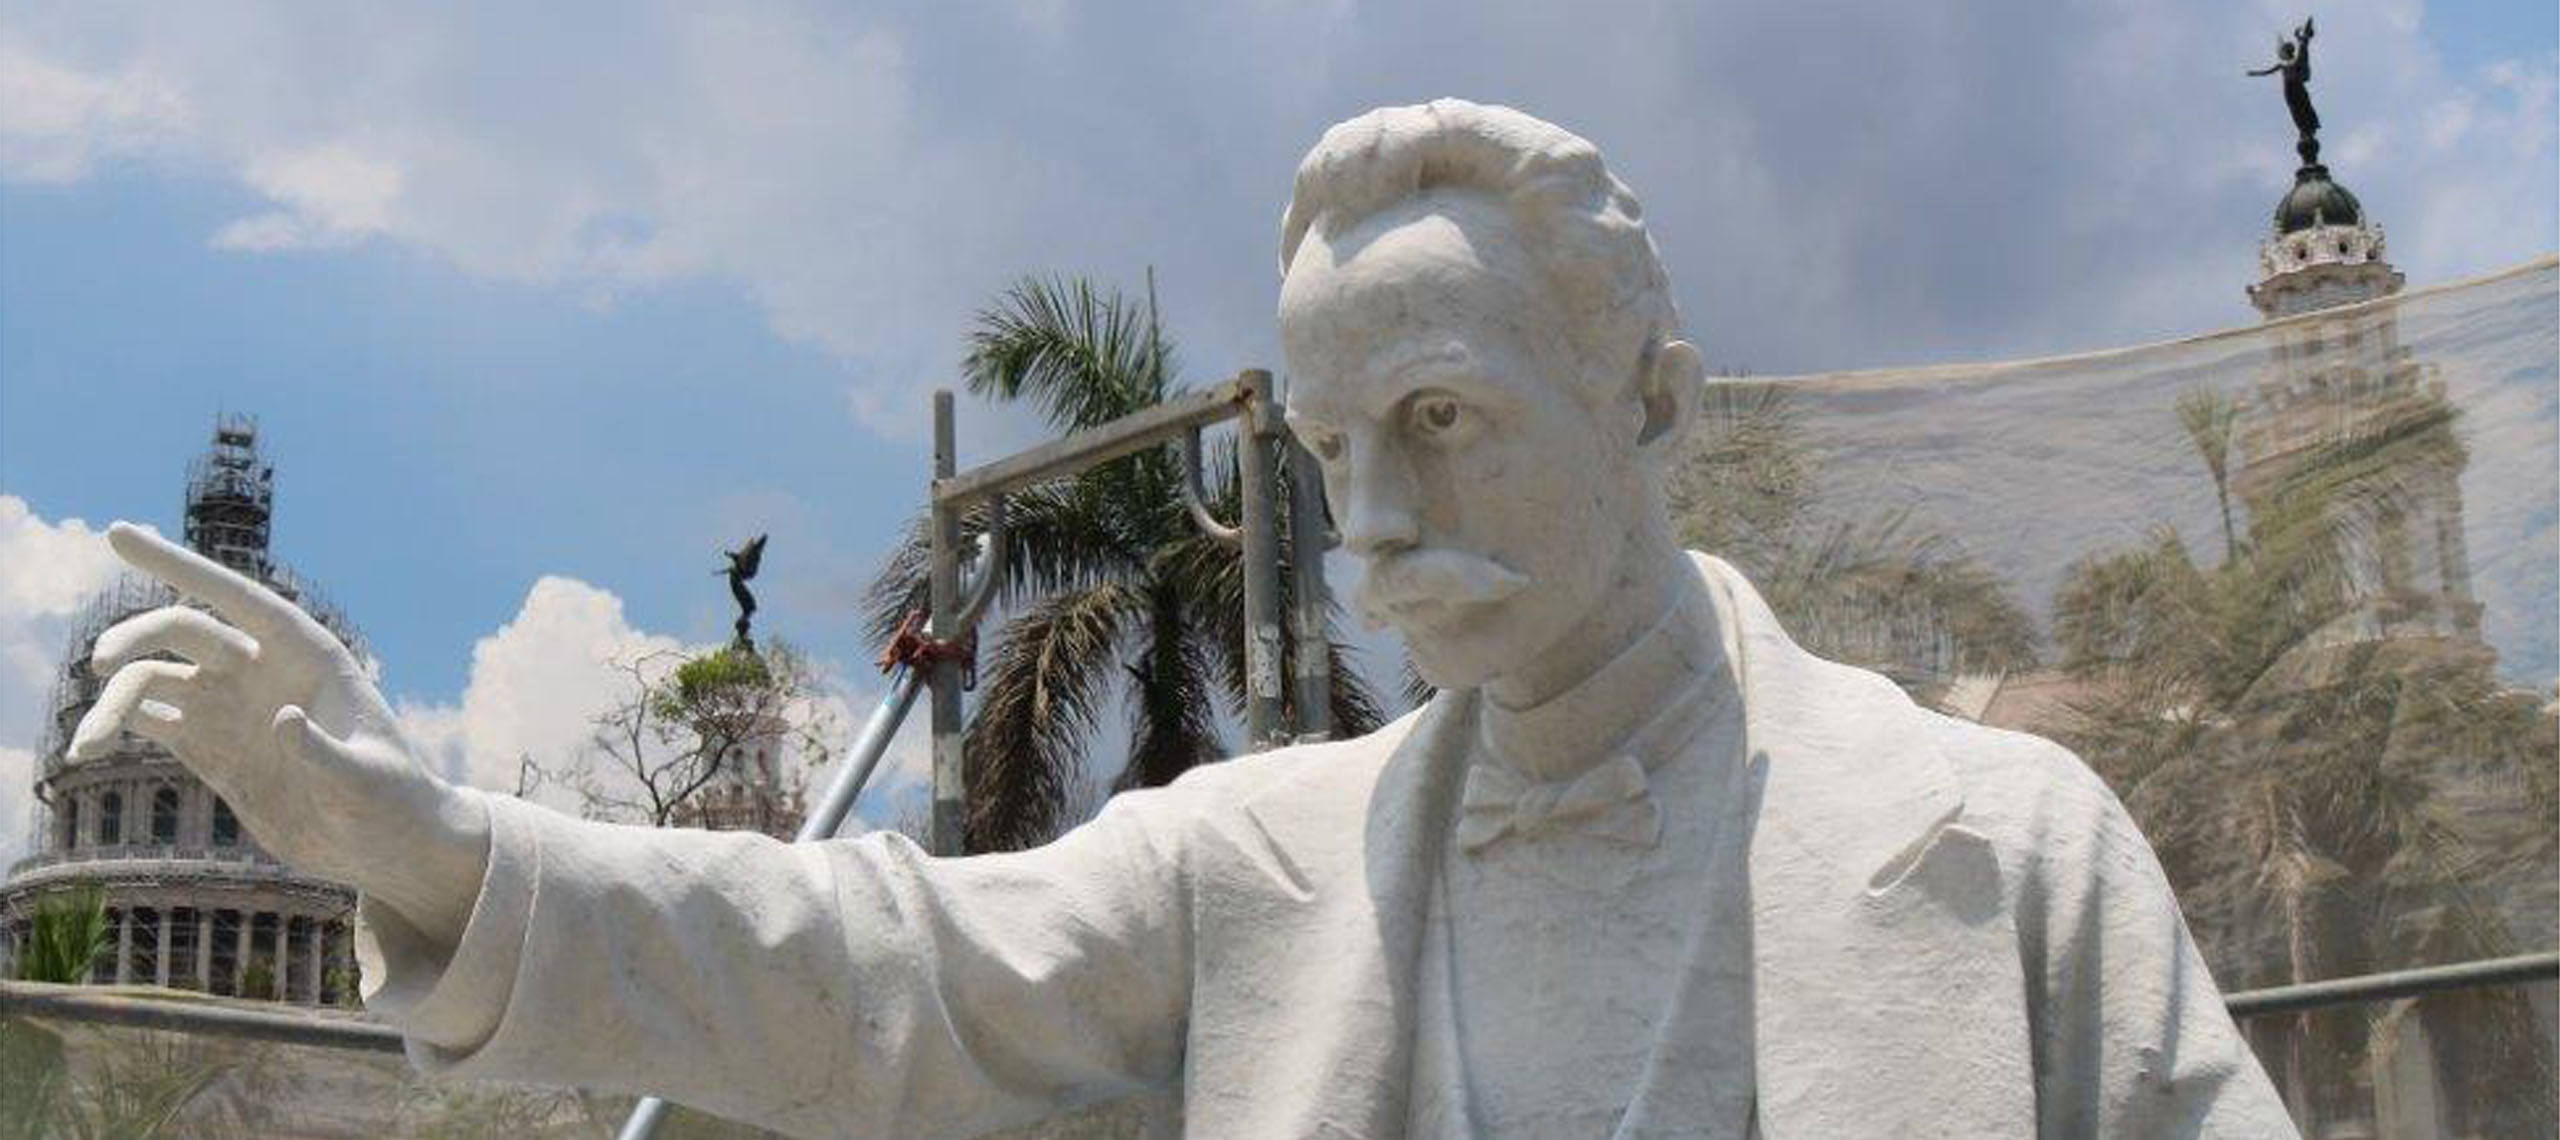 MD Projektmanagement – Memorial José Martí